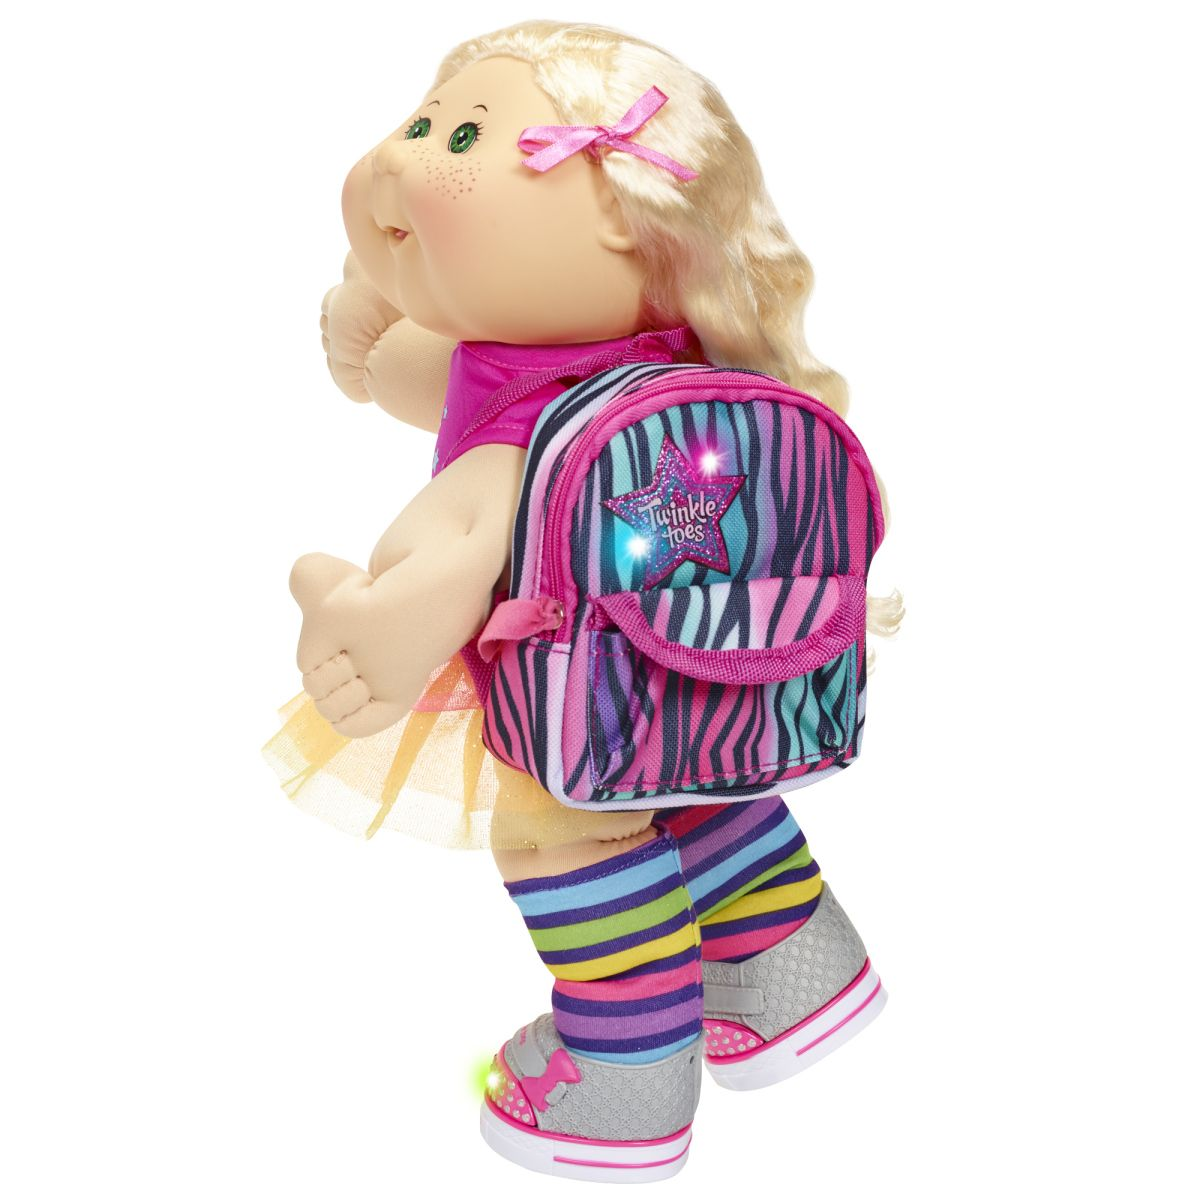 Cabbage Patch Kids Twinkle Toes 2 Out Of Packaging Cabbage Patch Kids Cabbage Patch Babies Cabbage Patch Kids Dolls